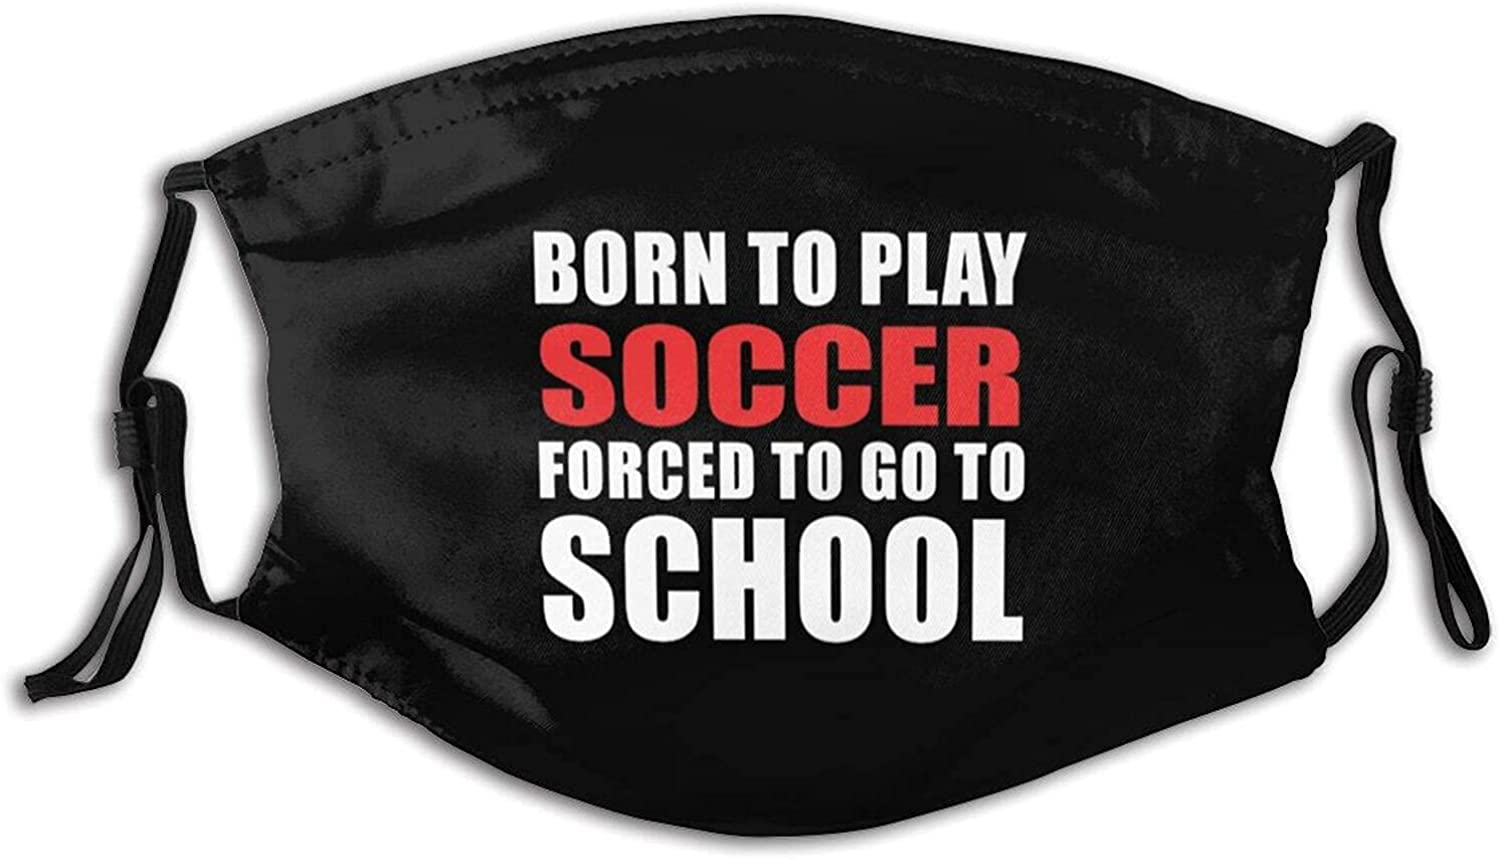 Born to Play Soccer Forced to Go to School Face Mask, Bandanas Reusable Washable Cloth with 2 Filters Dustproof Windproof Bandanas for Men Women Balaclava